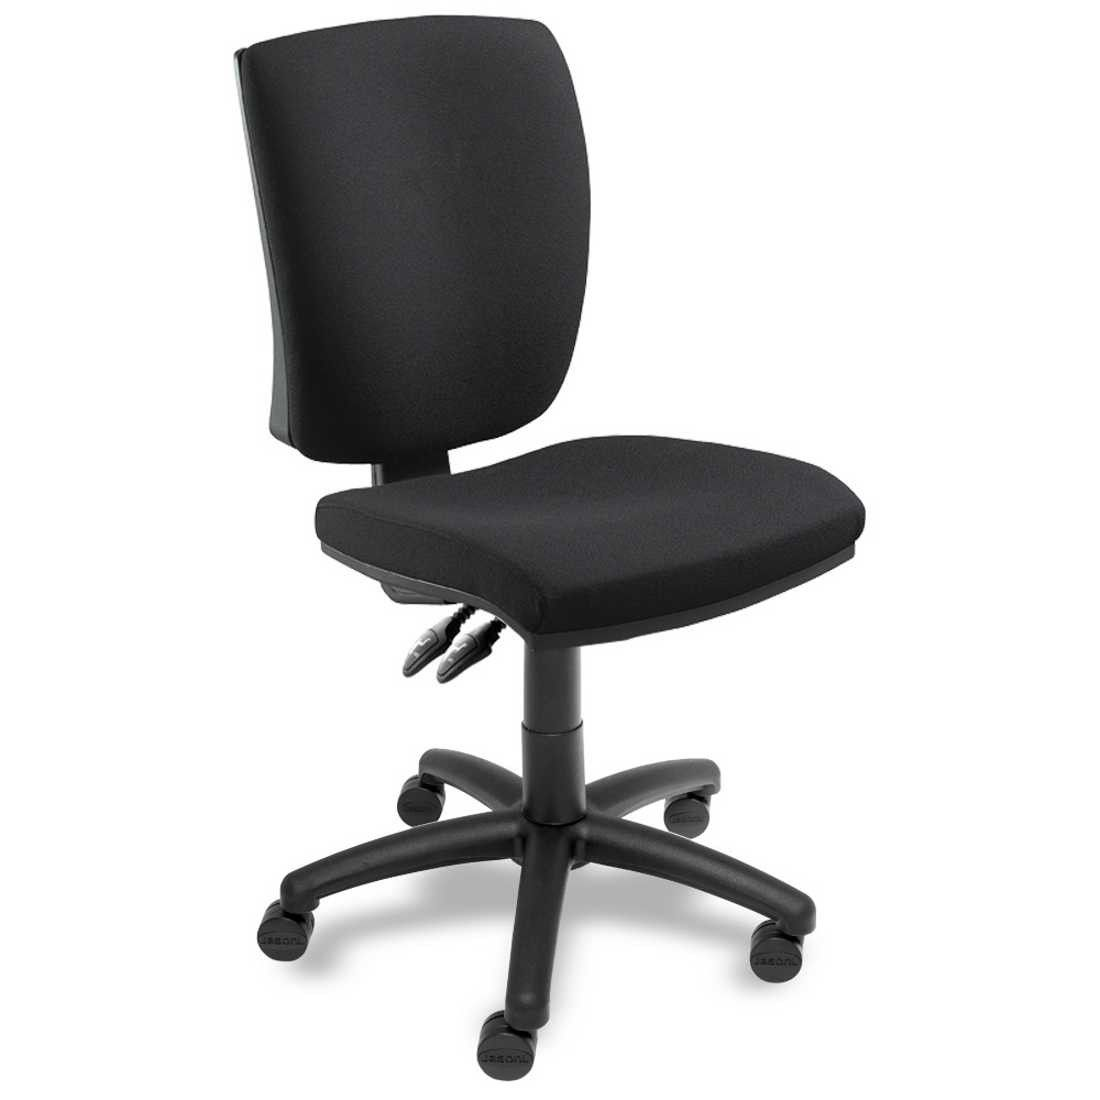 Armless Office Chairs With Wheels Home Furniture Images Check More At Http